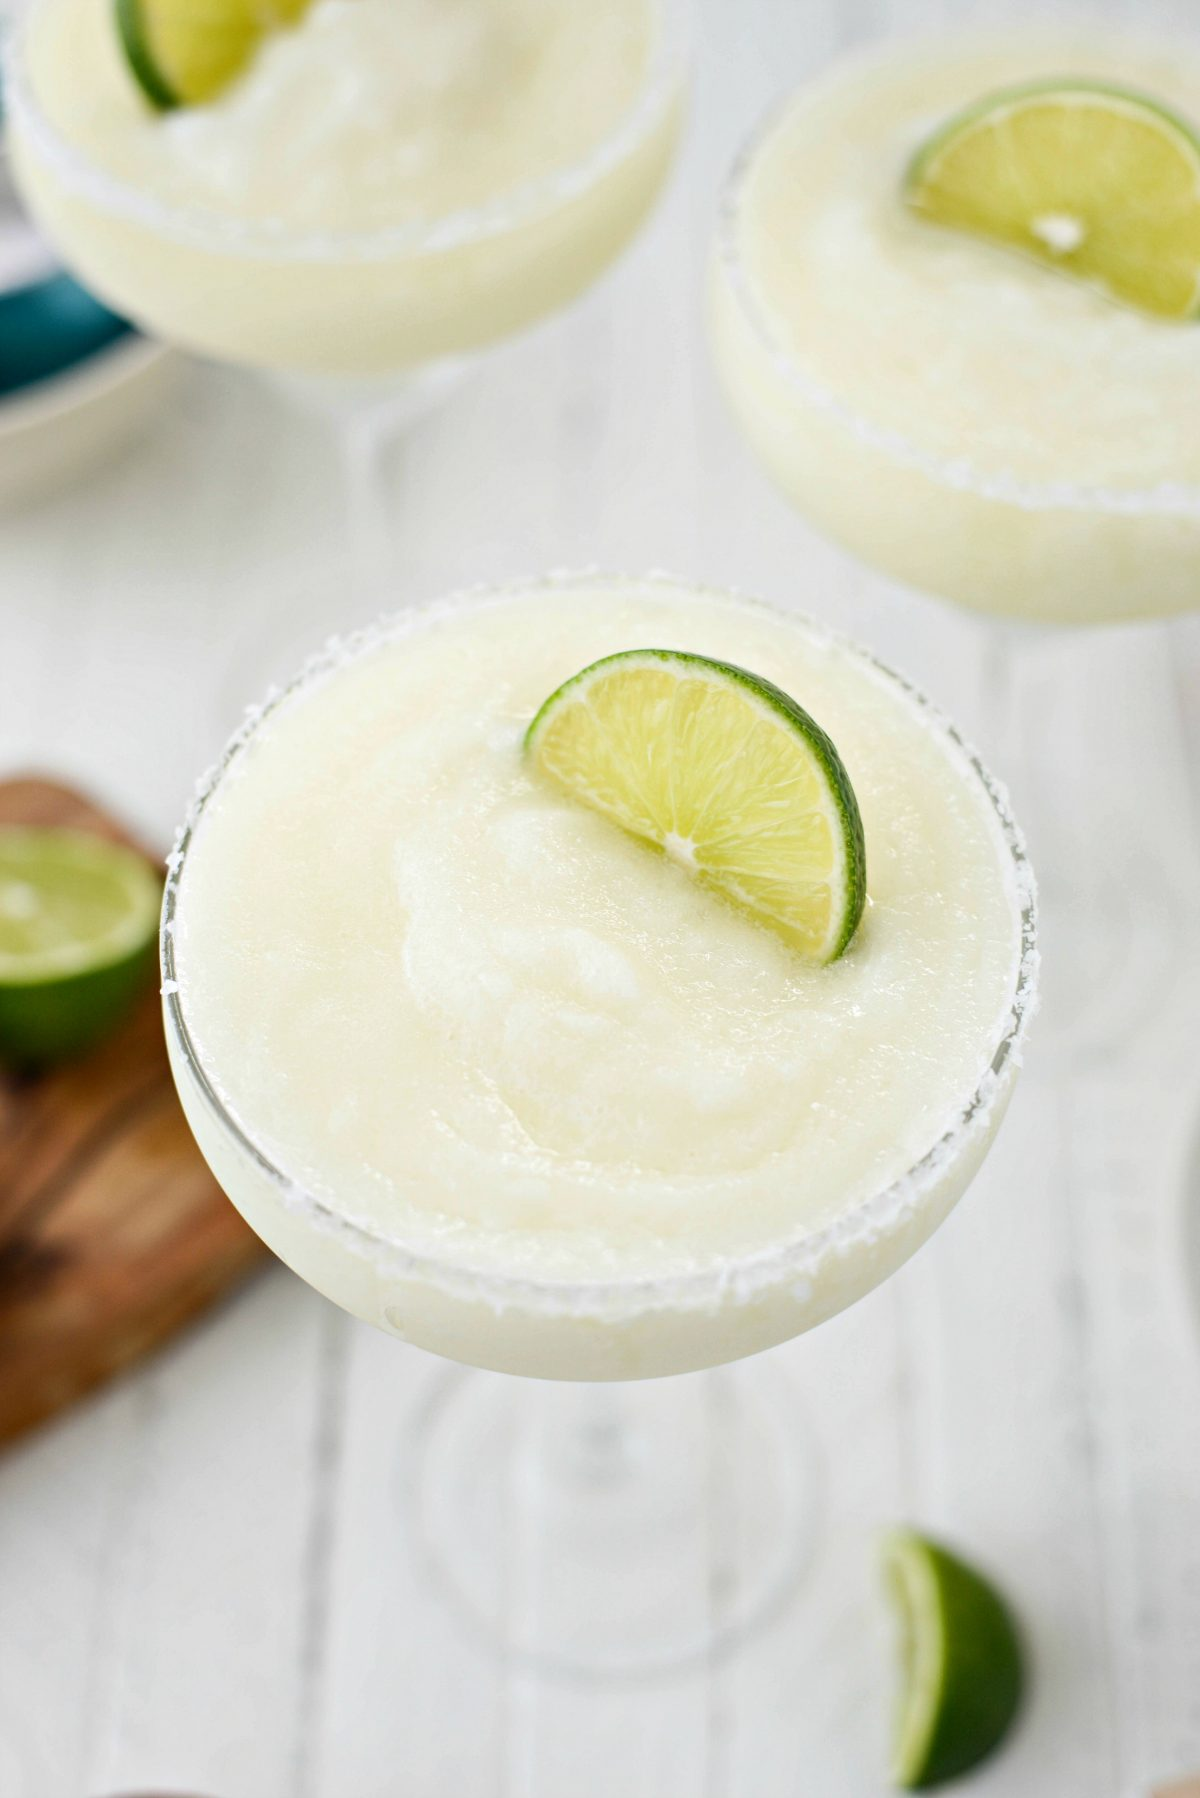 Frozen Margarita Slush l SimplyScratch.com #adultbeverage #margarita #frozen #tequila #cincodemayo #easy #blender #margs #drink